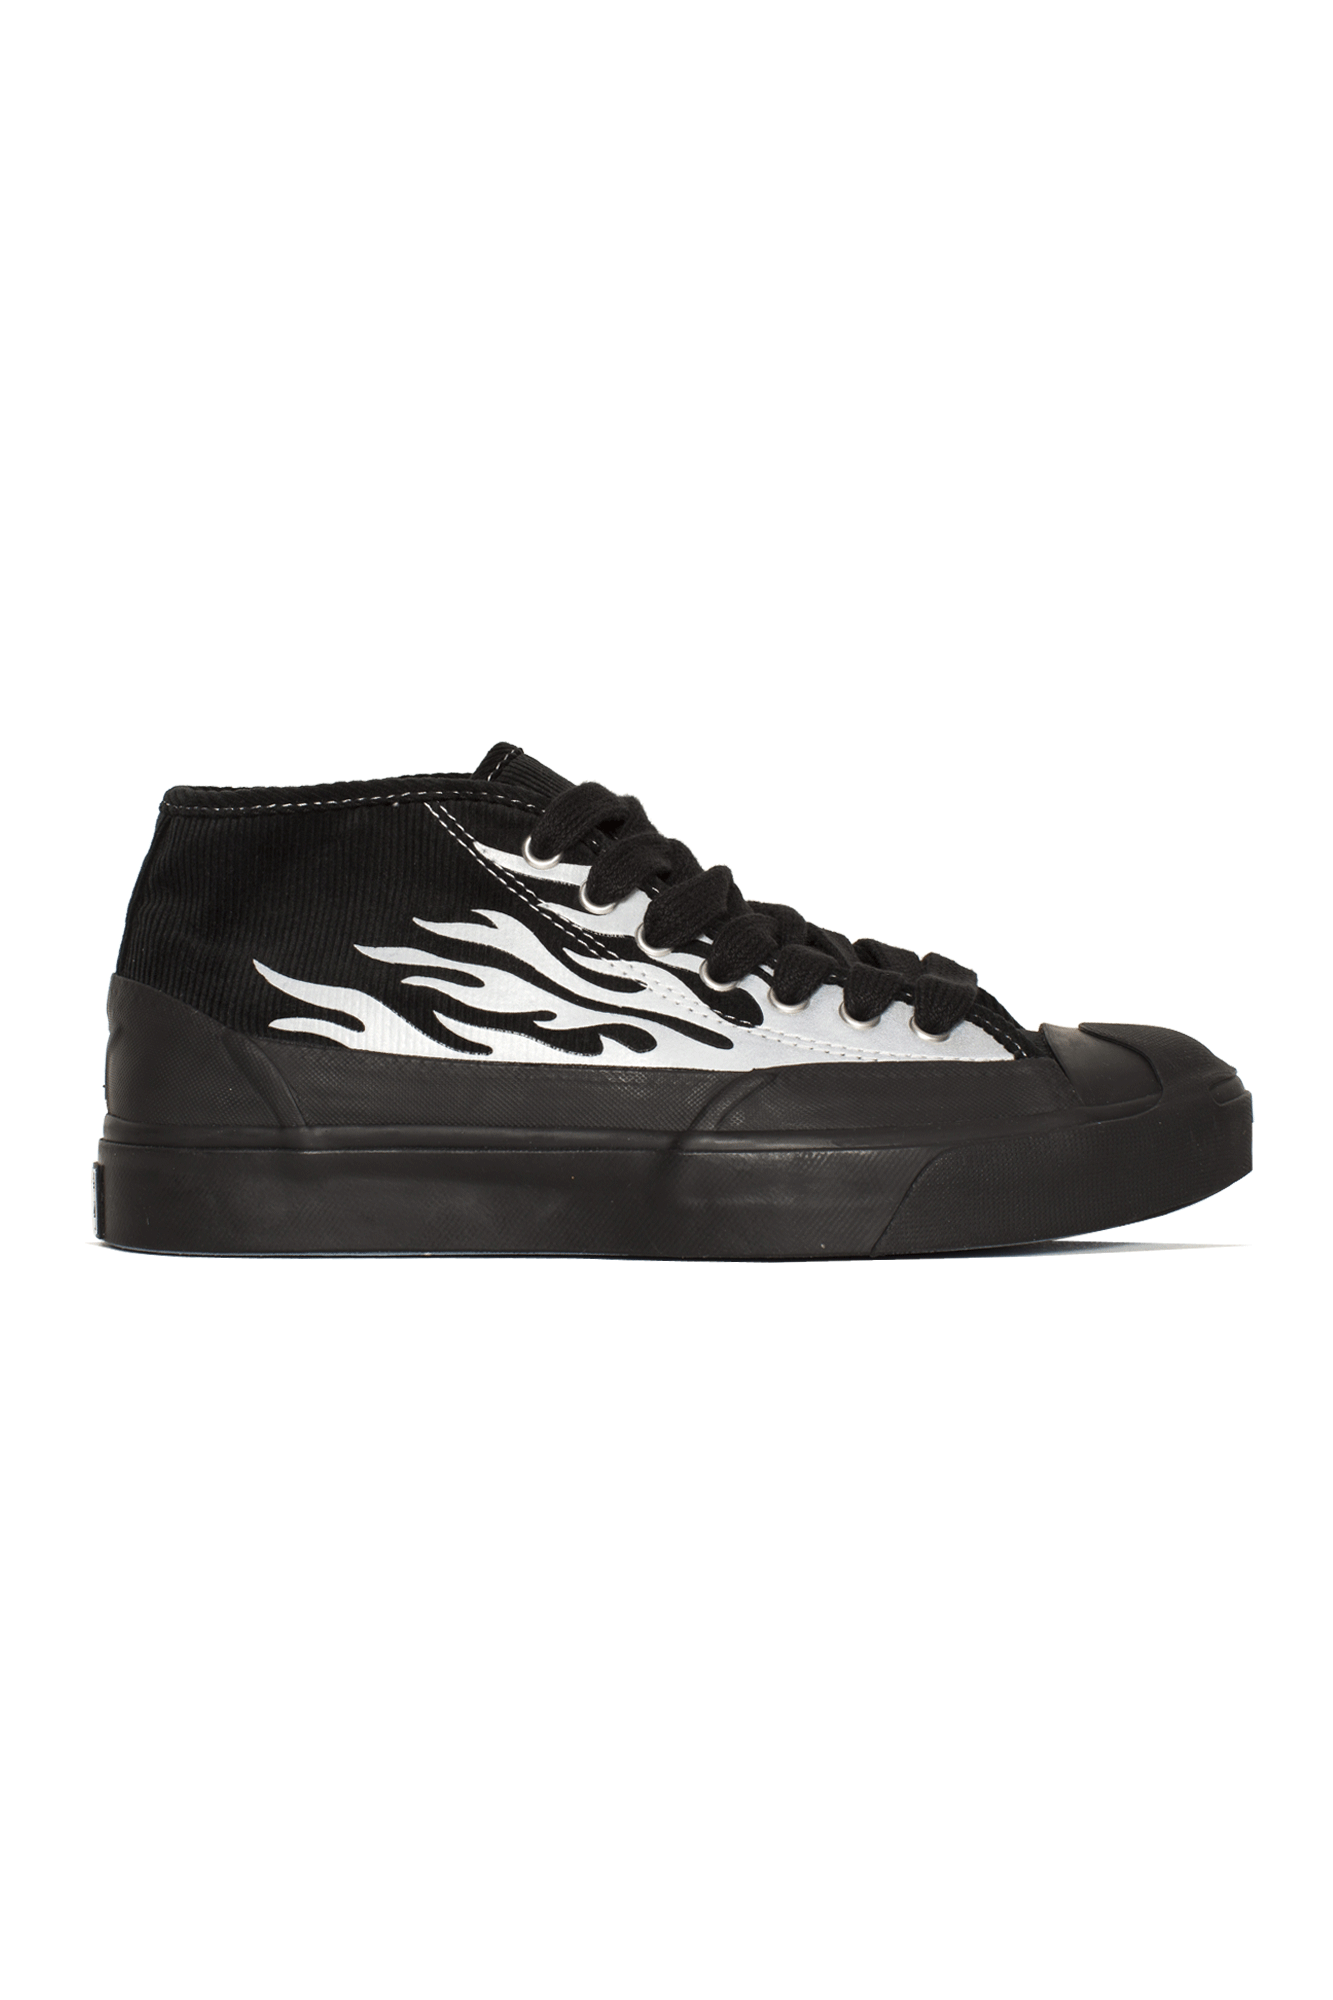 Jack Purcell Chukka Mid X Asap Nast Black